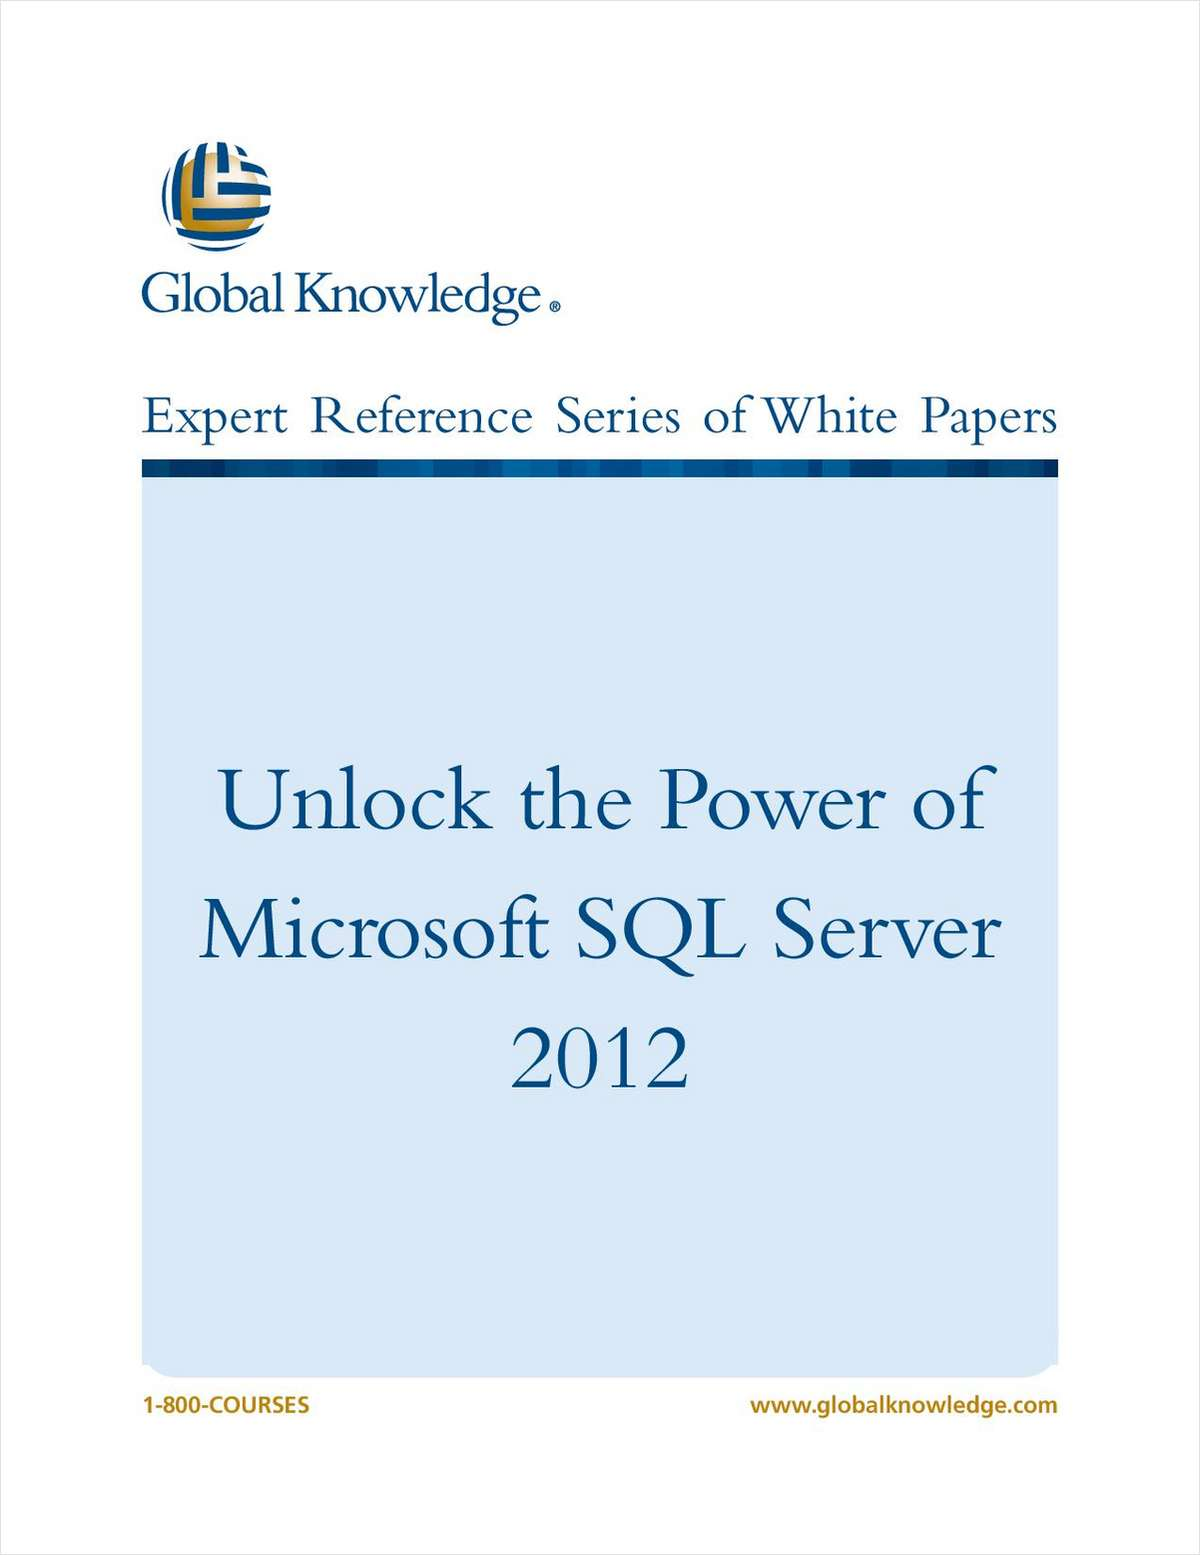 Unlock the Power of Microsoft SQL Server 2012